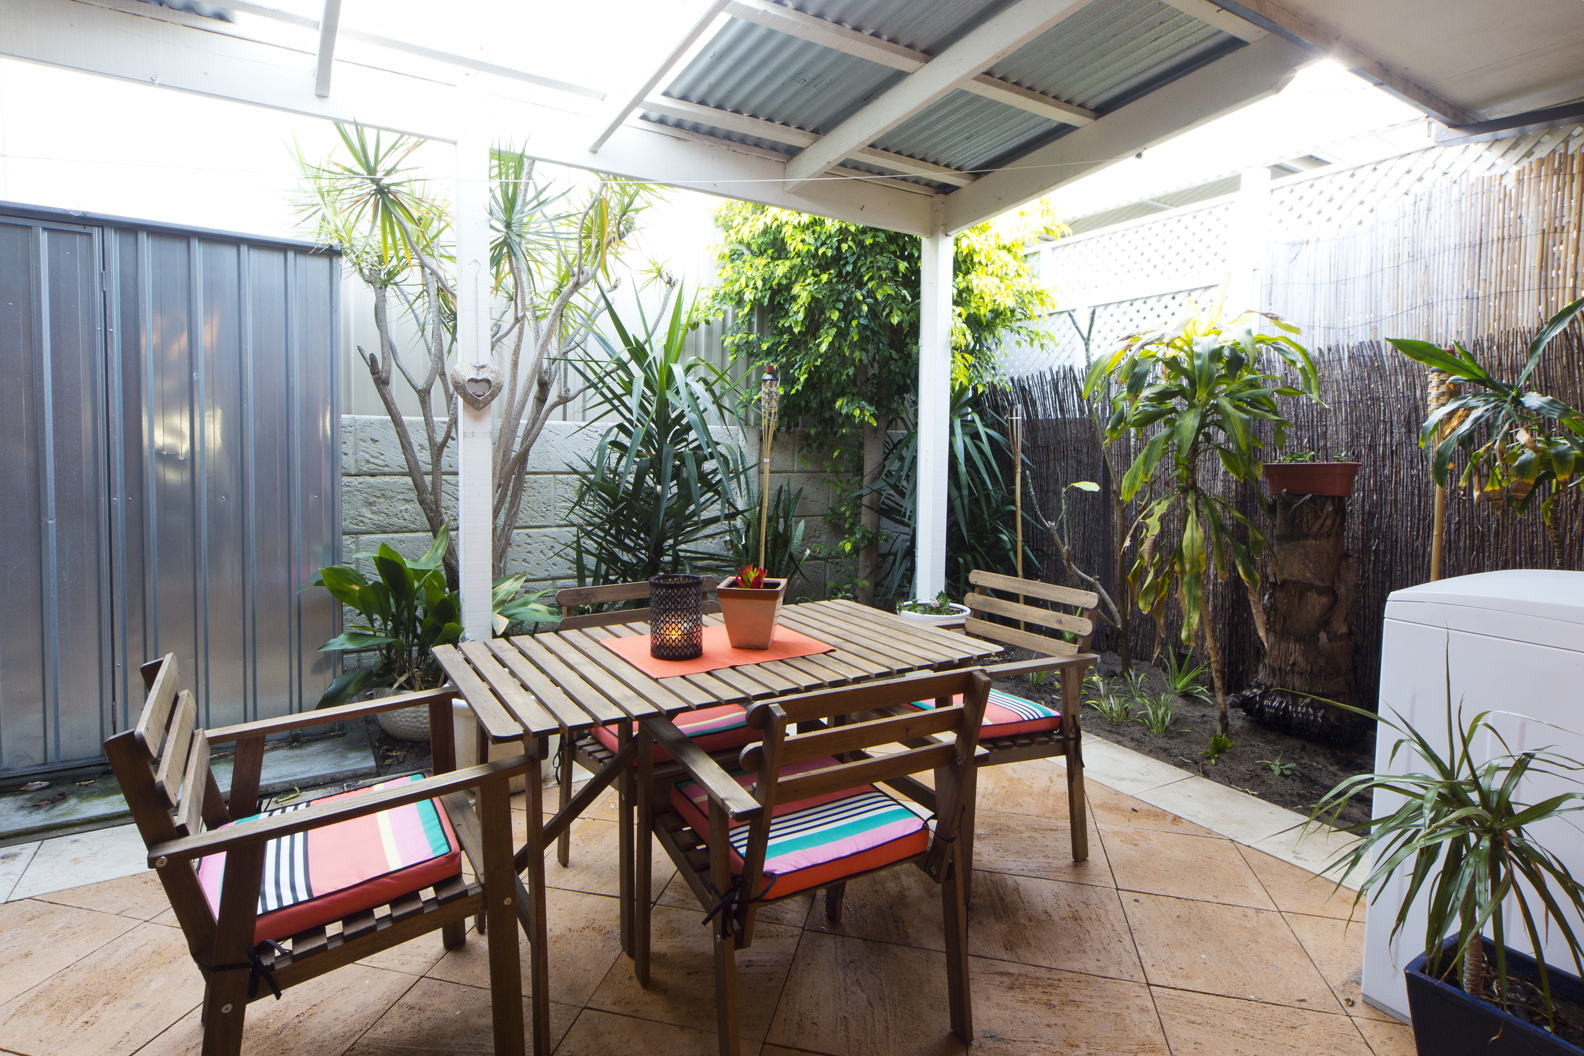 2/46 Pearl Parade Scarborough - House For Sale - 23249591 - ACTON Applecross